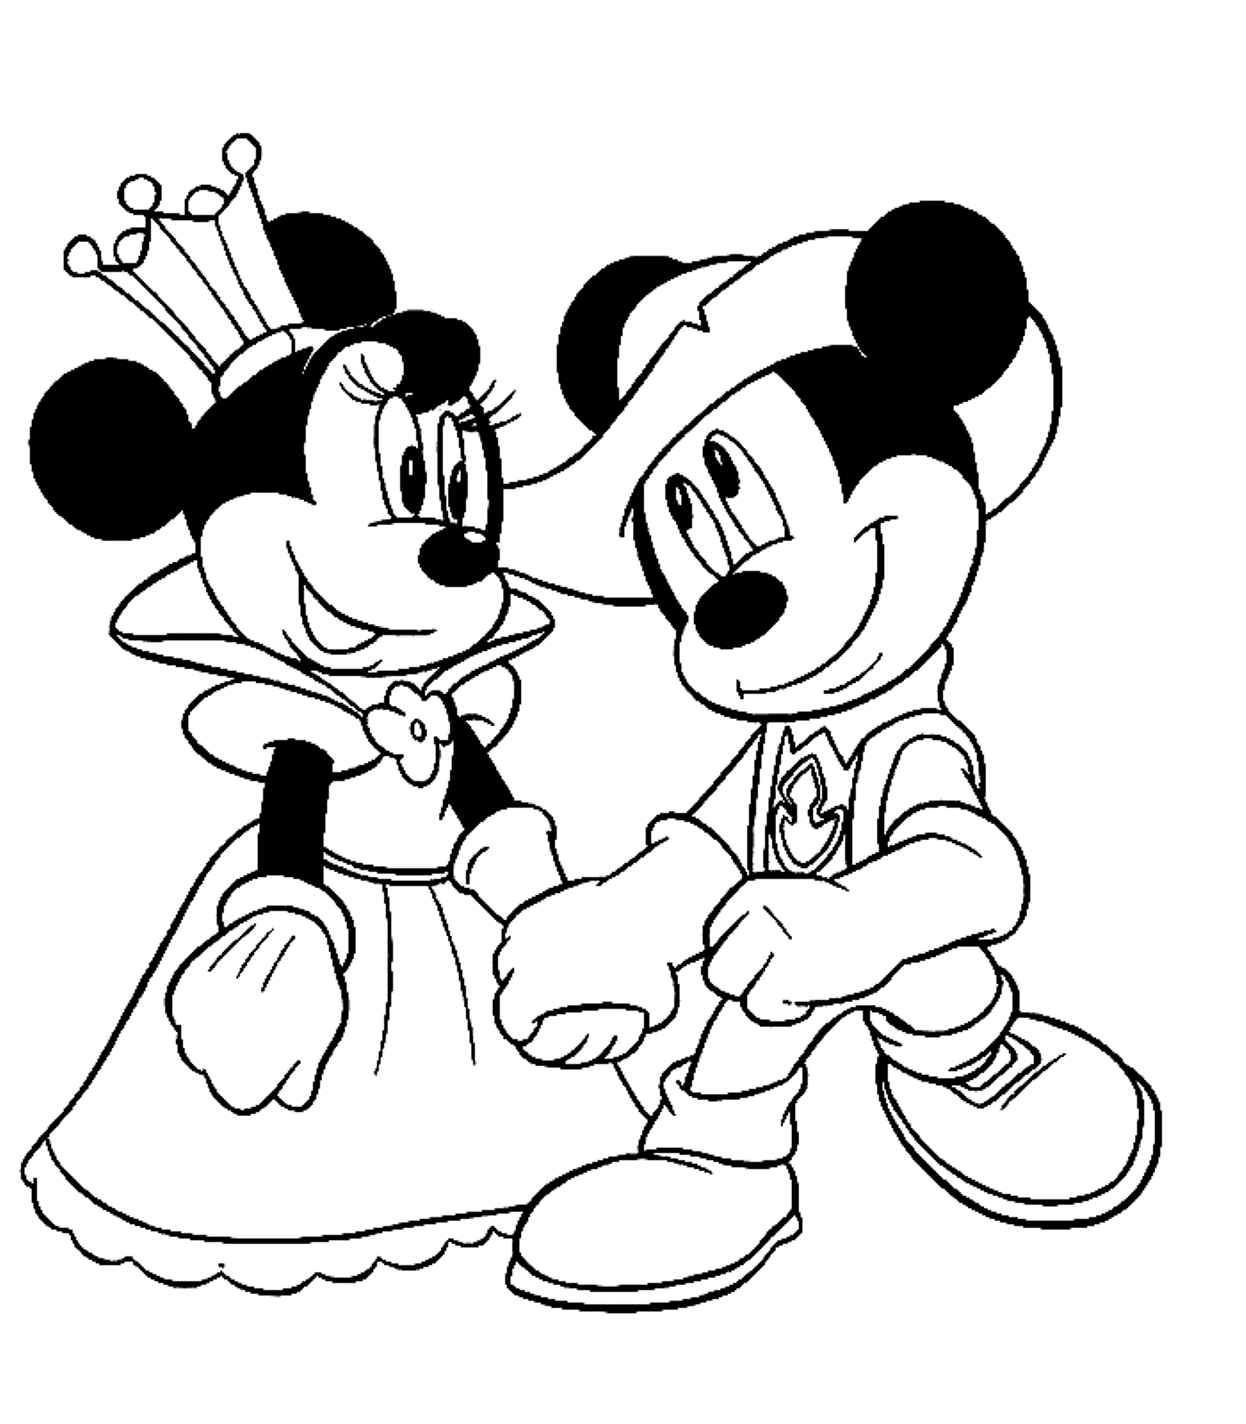 1246x1424 Minnie And Mickey Mouse Drawings In Pencil